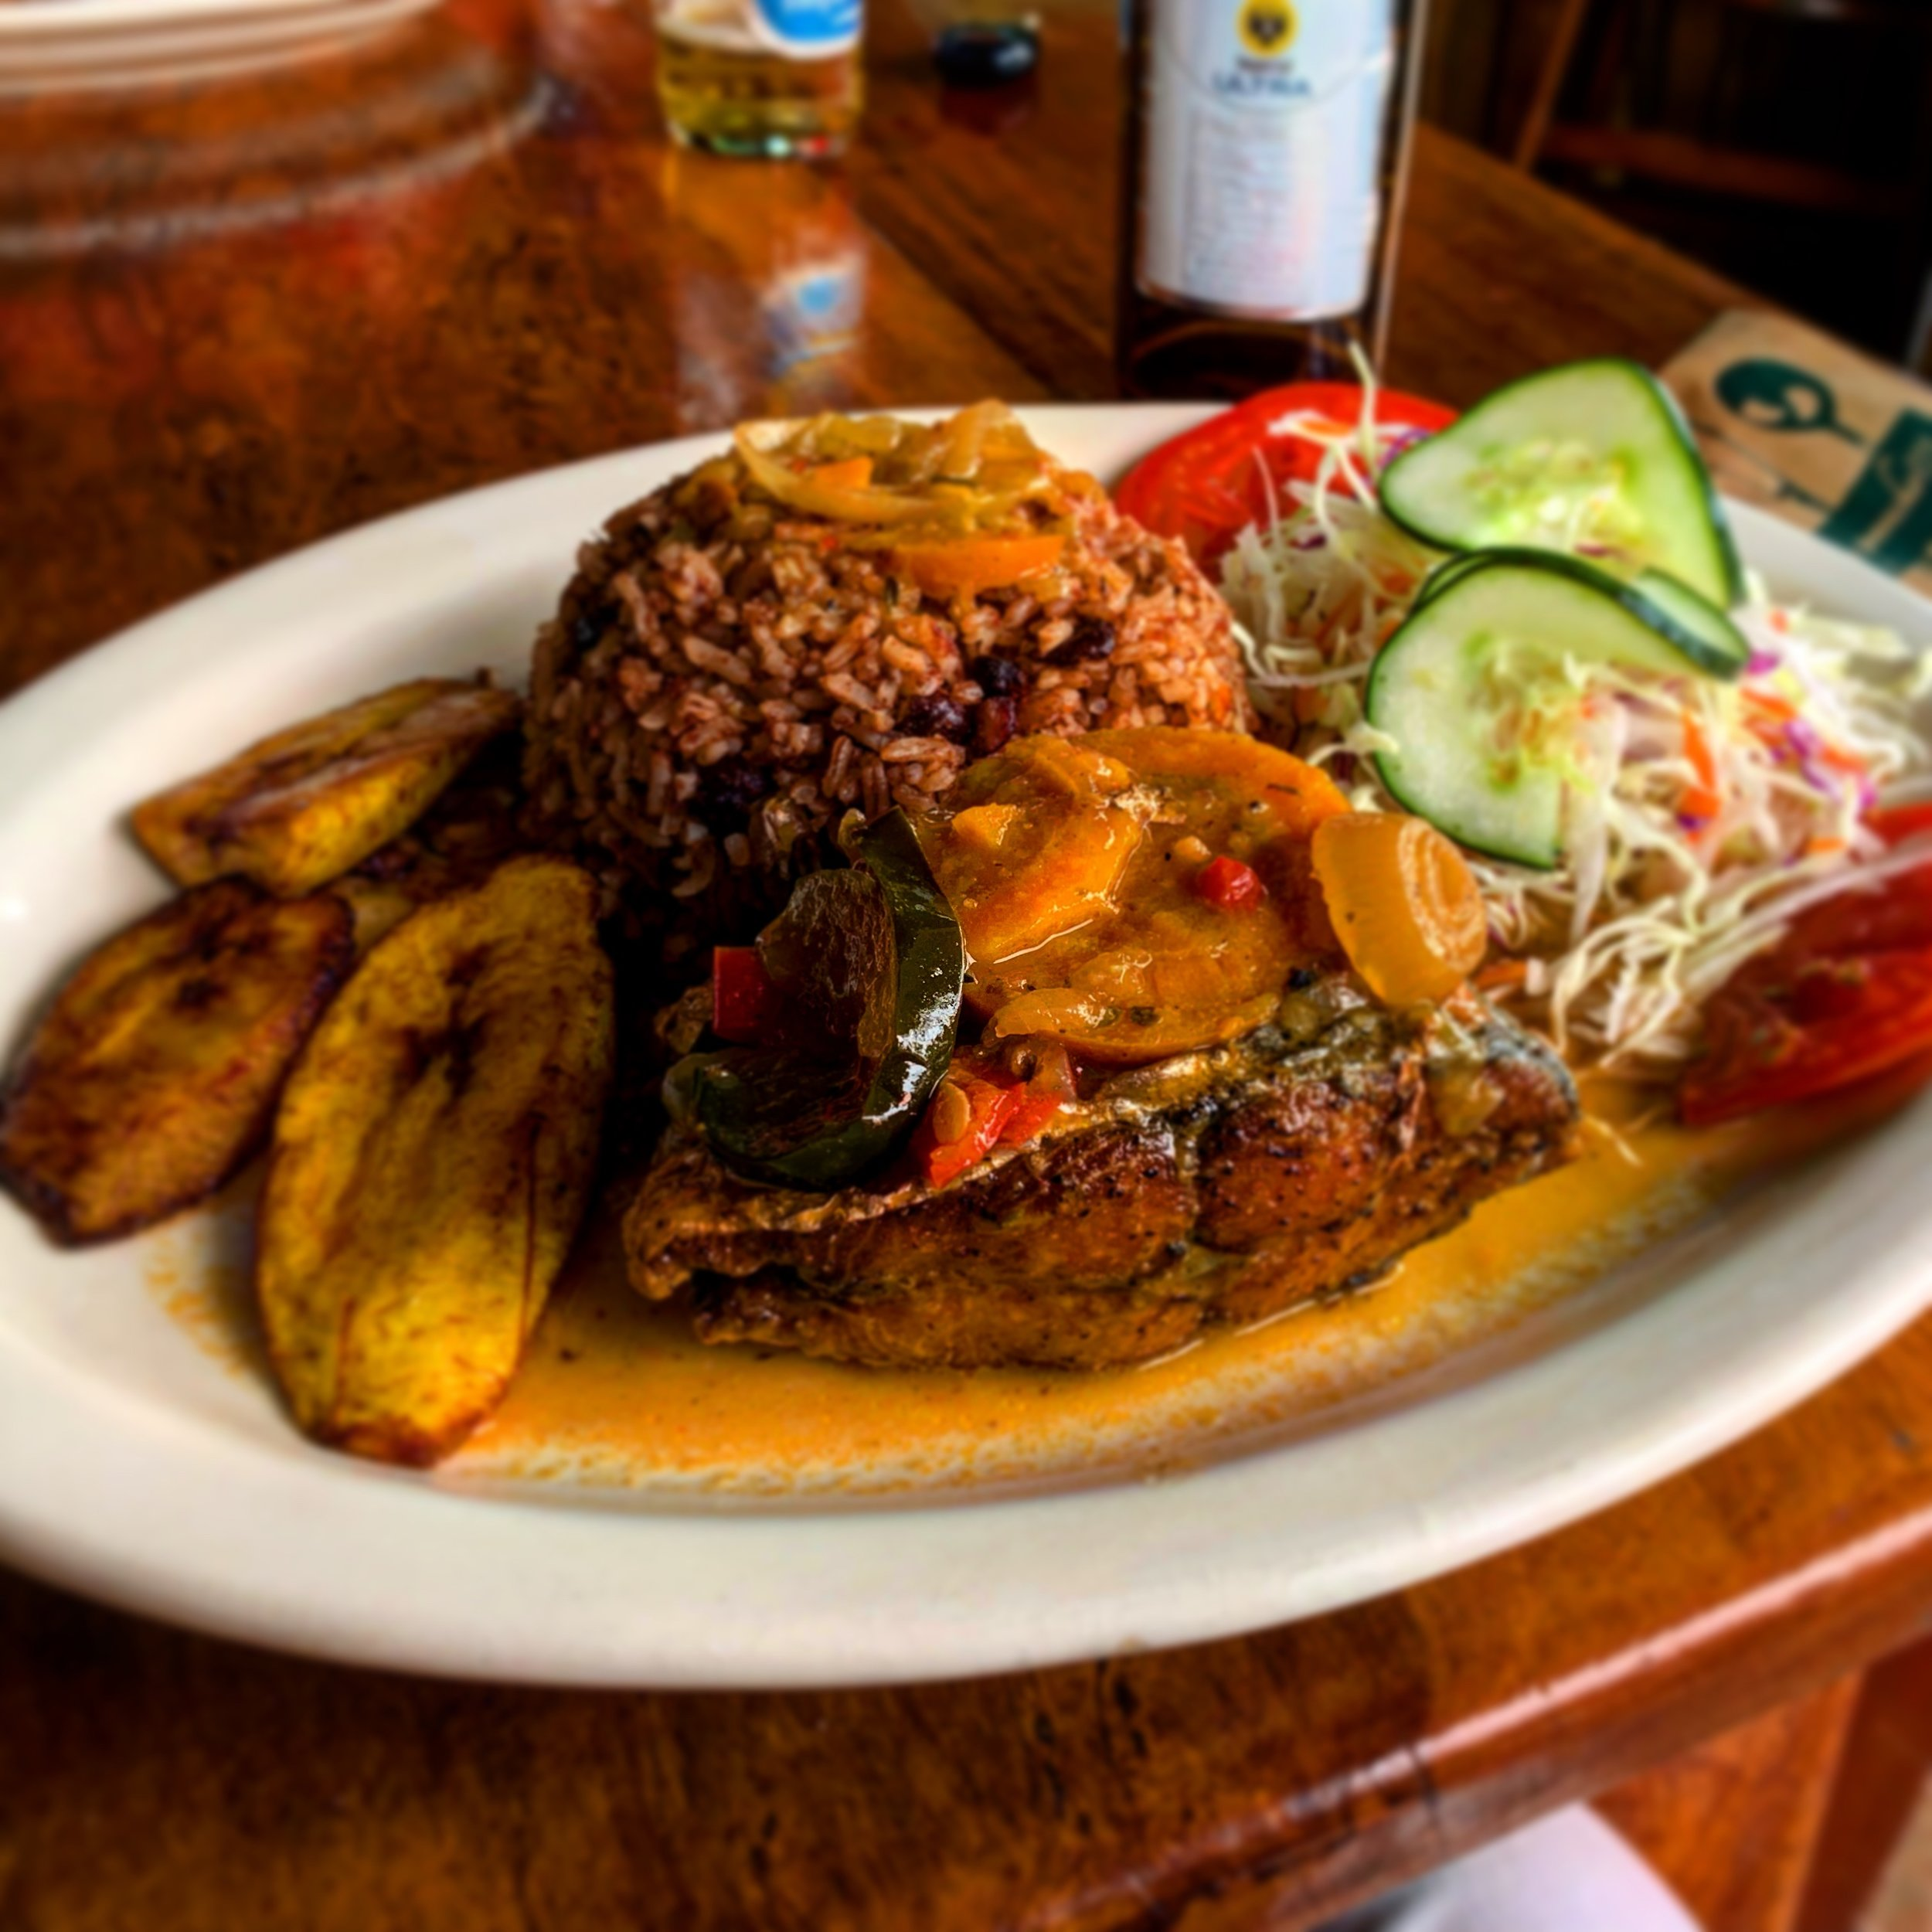 Caribbean-style rice & beans at Coco's Restaurant & Bar in Cahuita, Limon, Costa Rica